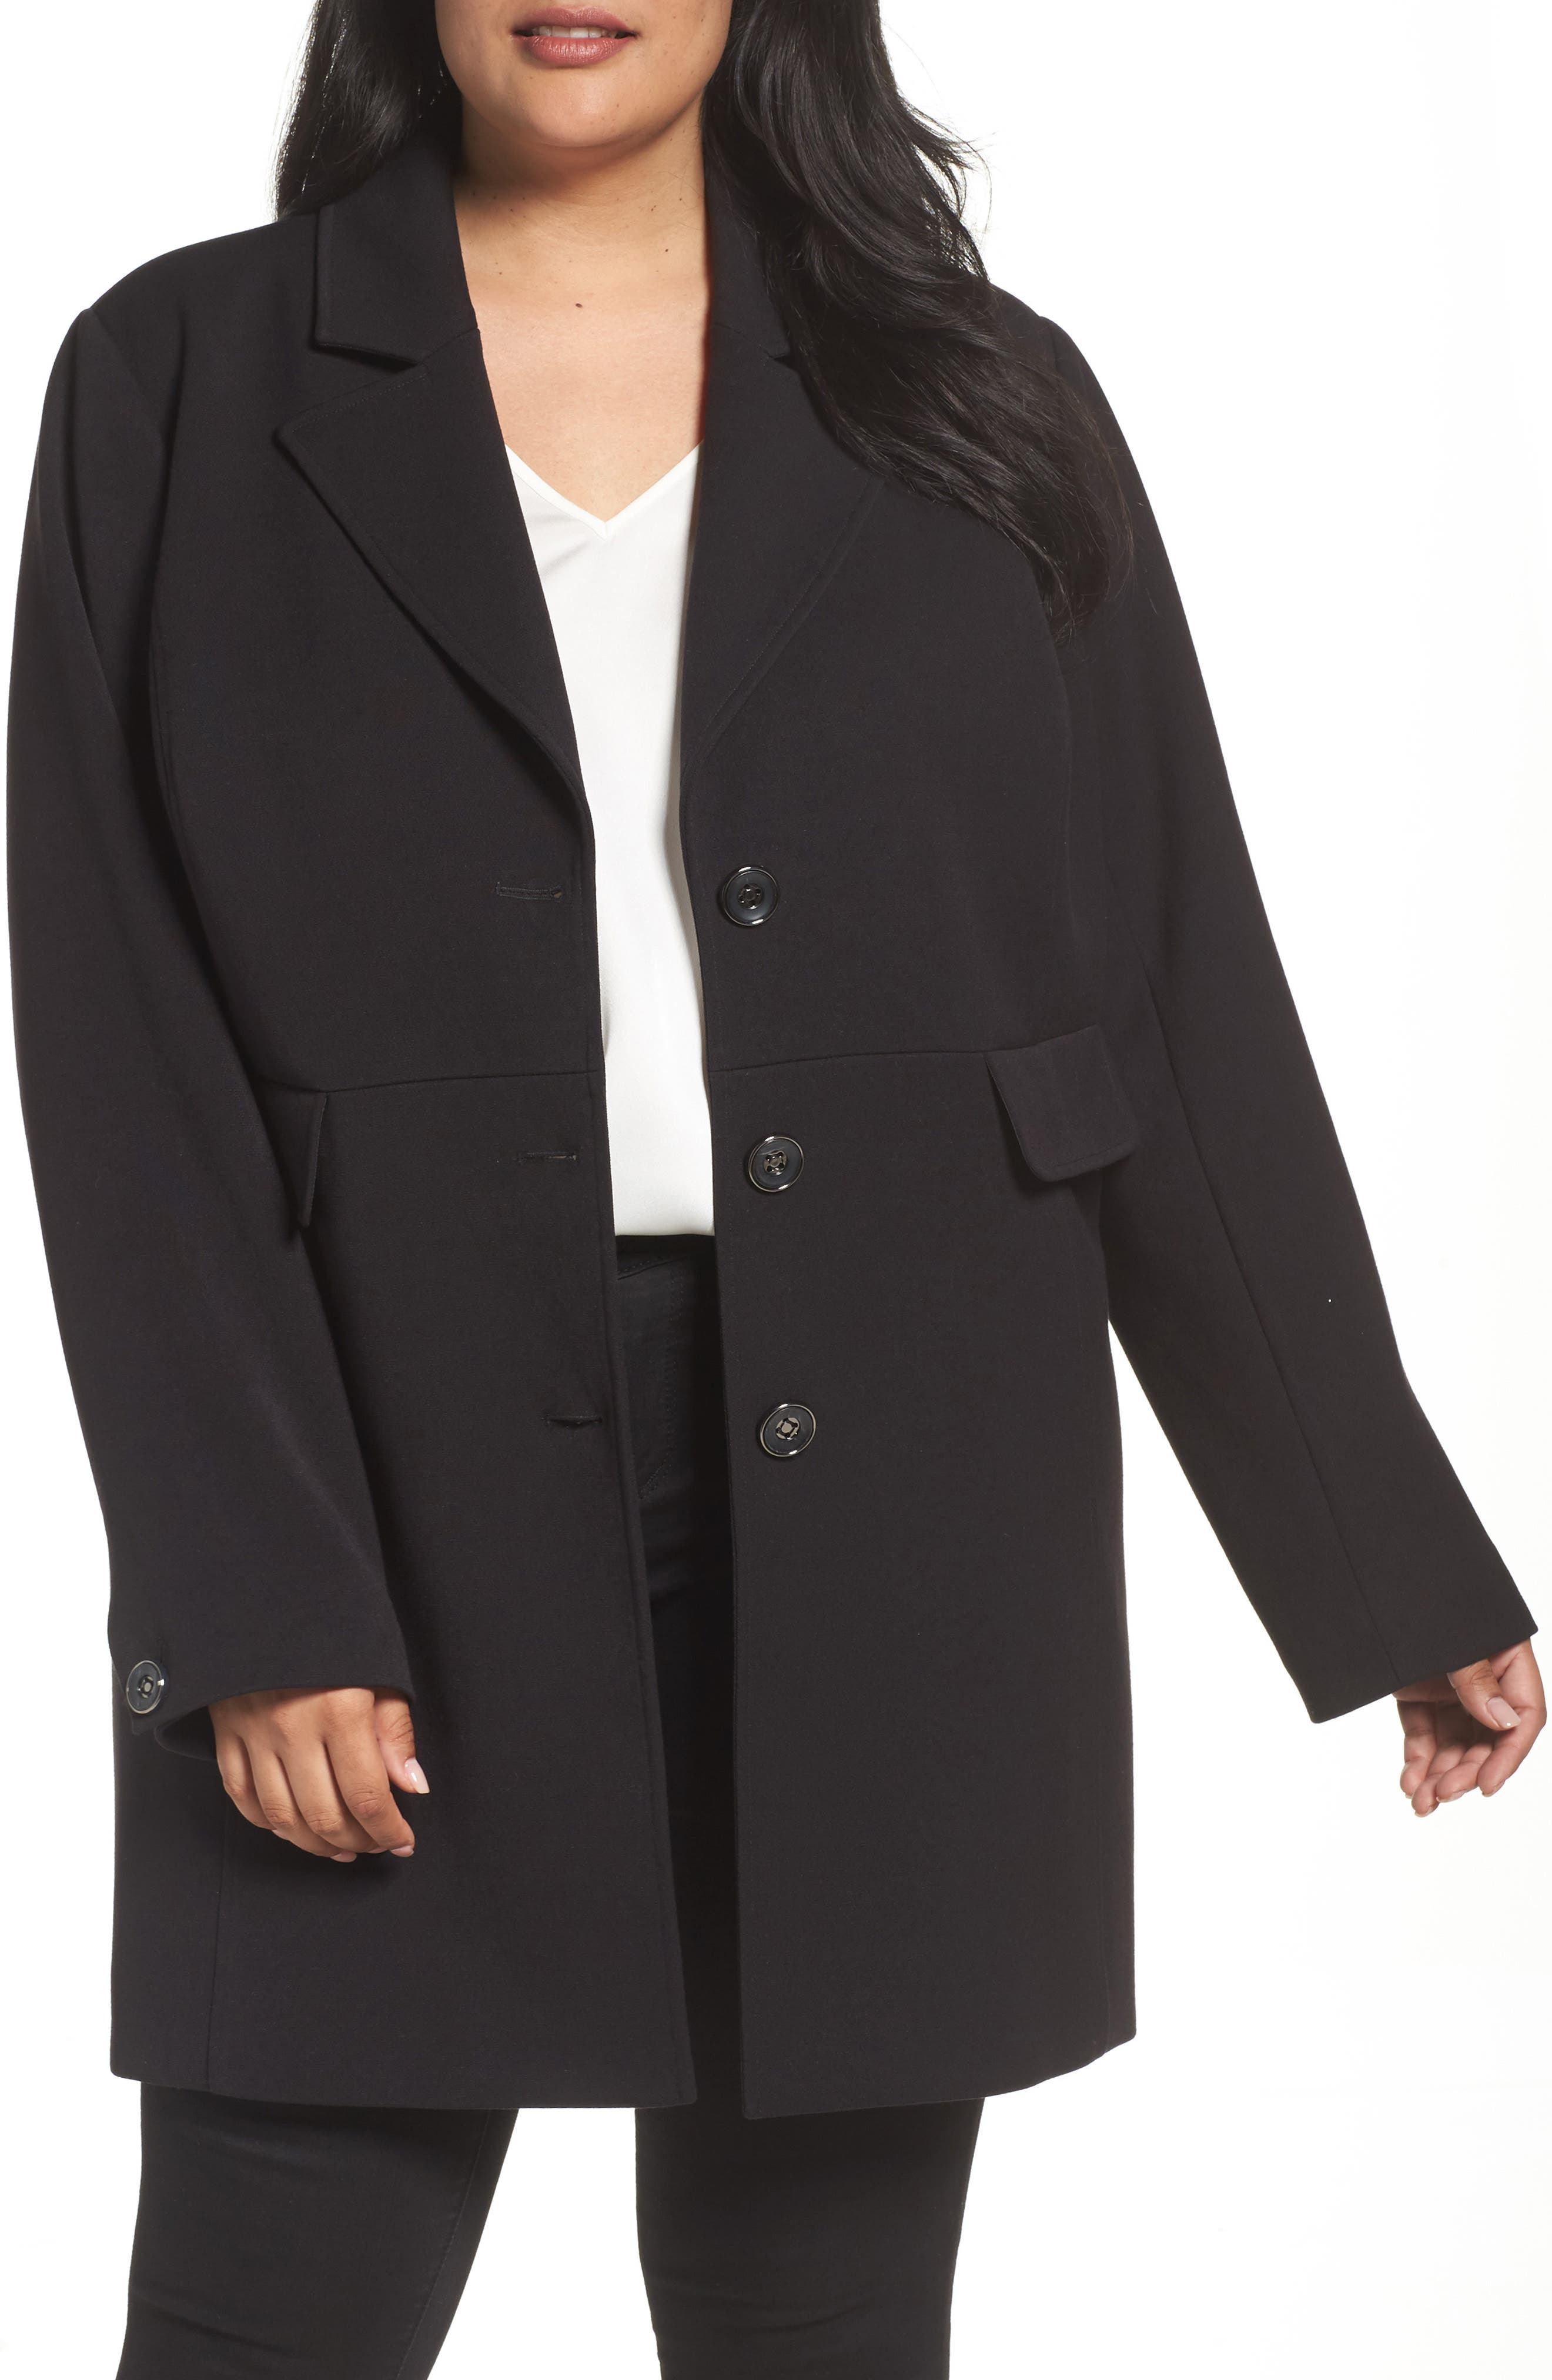 Single Breasted Ponte Coat,                             Main thumbnail 1, color,                             Black